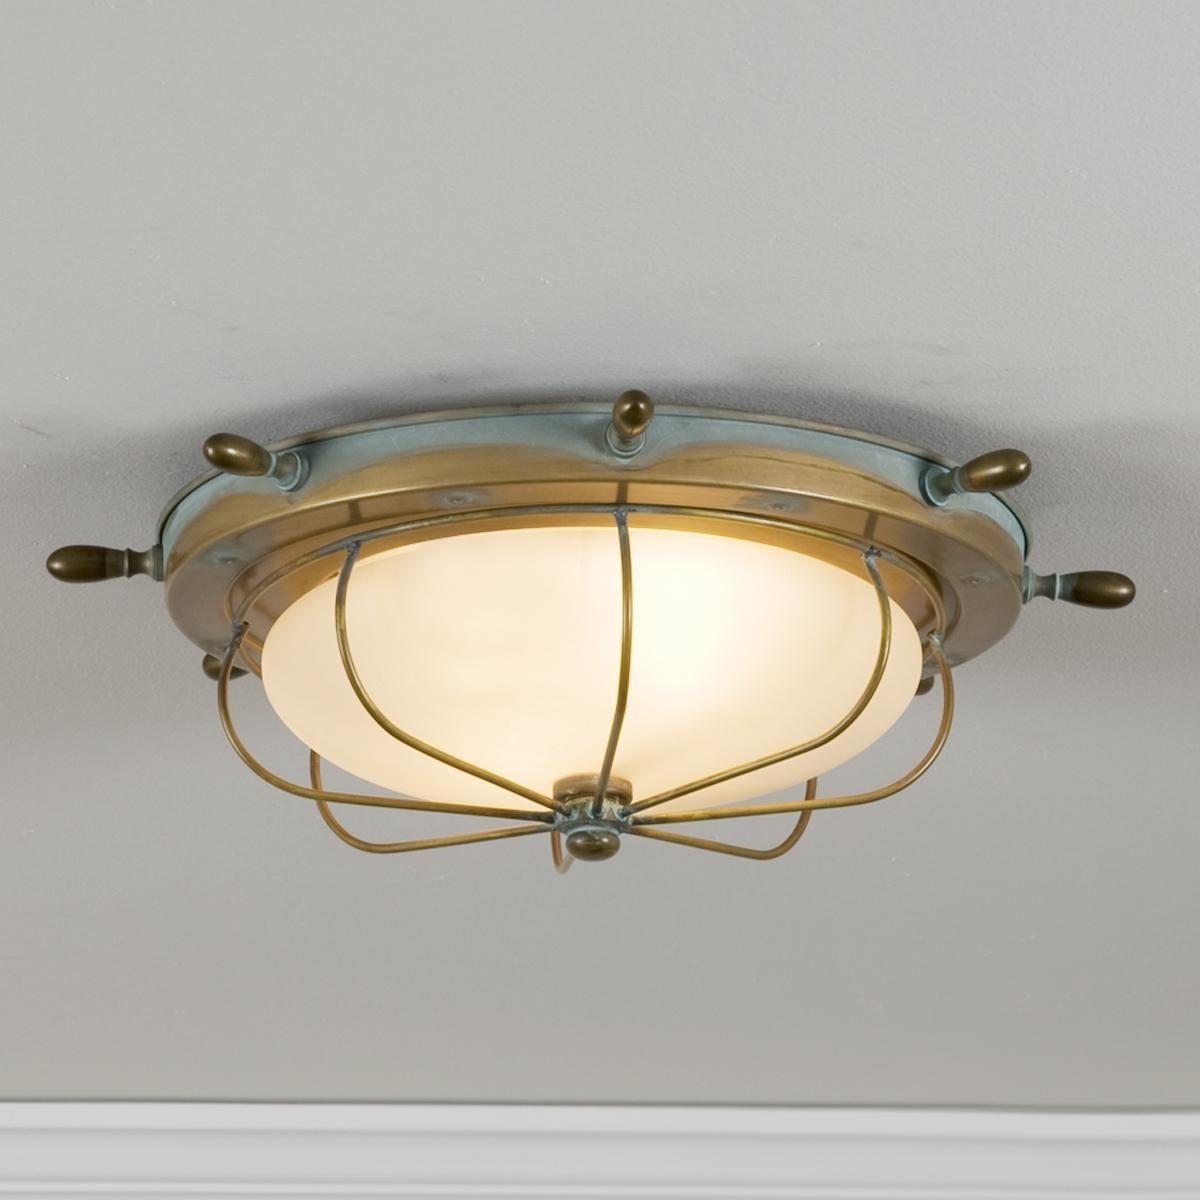 Captain's Ceiling Light | Ceiling Lights, Ceilings And Lights Intended For Outdoor Ceiling Nautical Lights (#5 of 15)